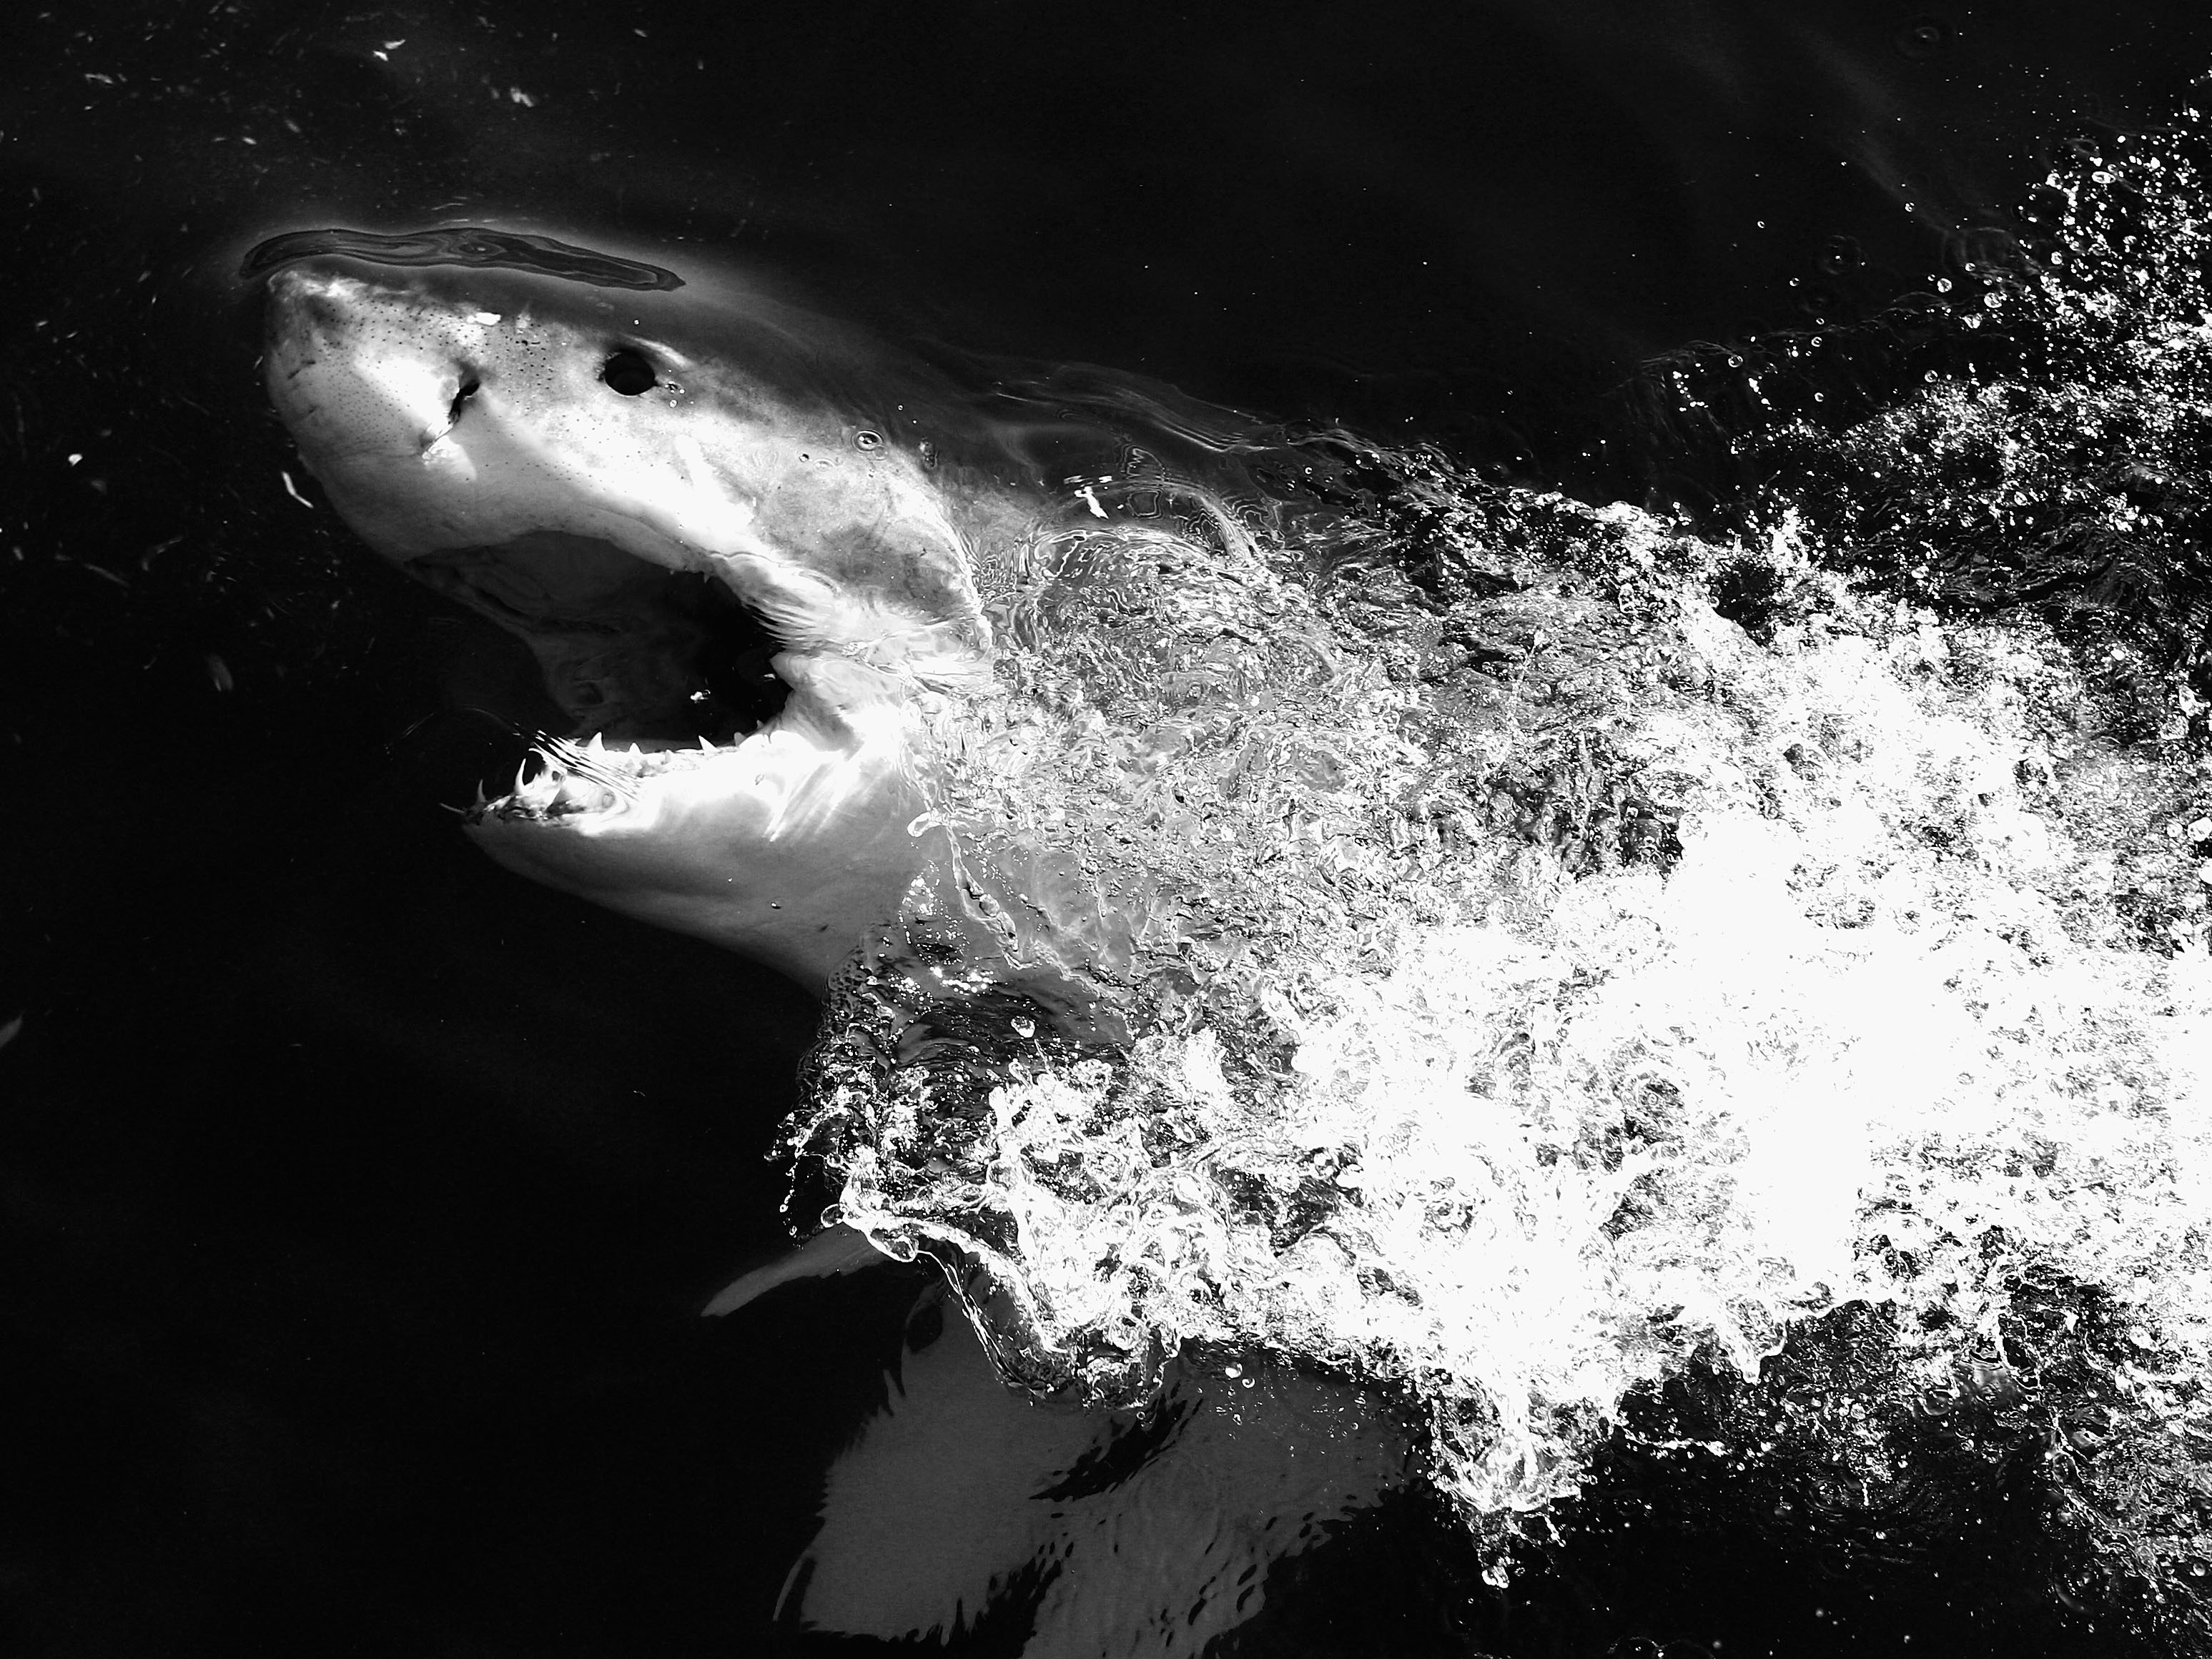 GANSBAAI, SOUTH AFRICA - JULY 08: (EDITOR'S NOTE: THIS DIGITAL IMAGE HAS BEEN CONVERTED TO BLACK AND WHITE) A Great White Shark is seen in the Indian Ocean near the town of Gans Bay on July 8, 2010 in Gansbaai, South Africa.  (Photo by Ryan Pierse/Getty Images)